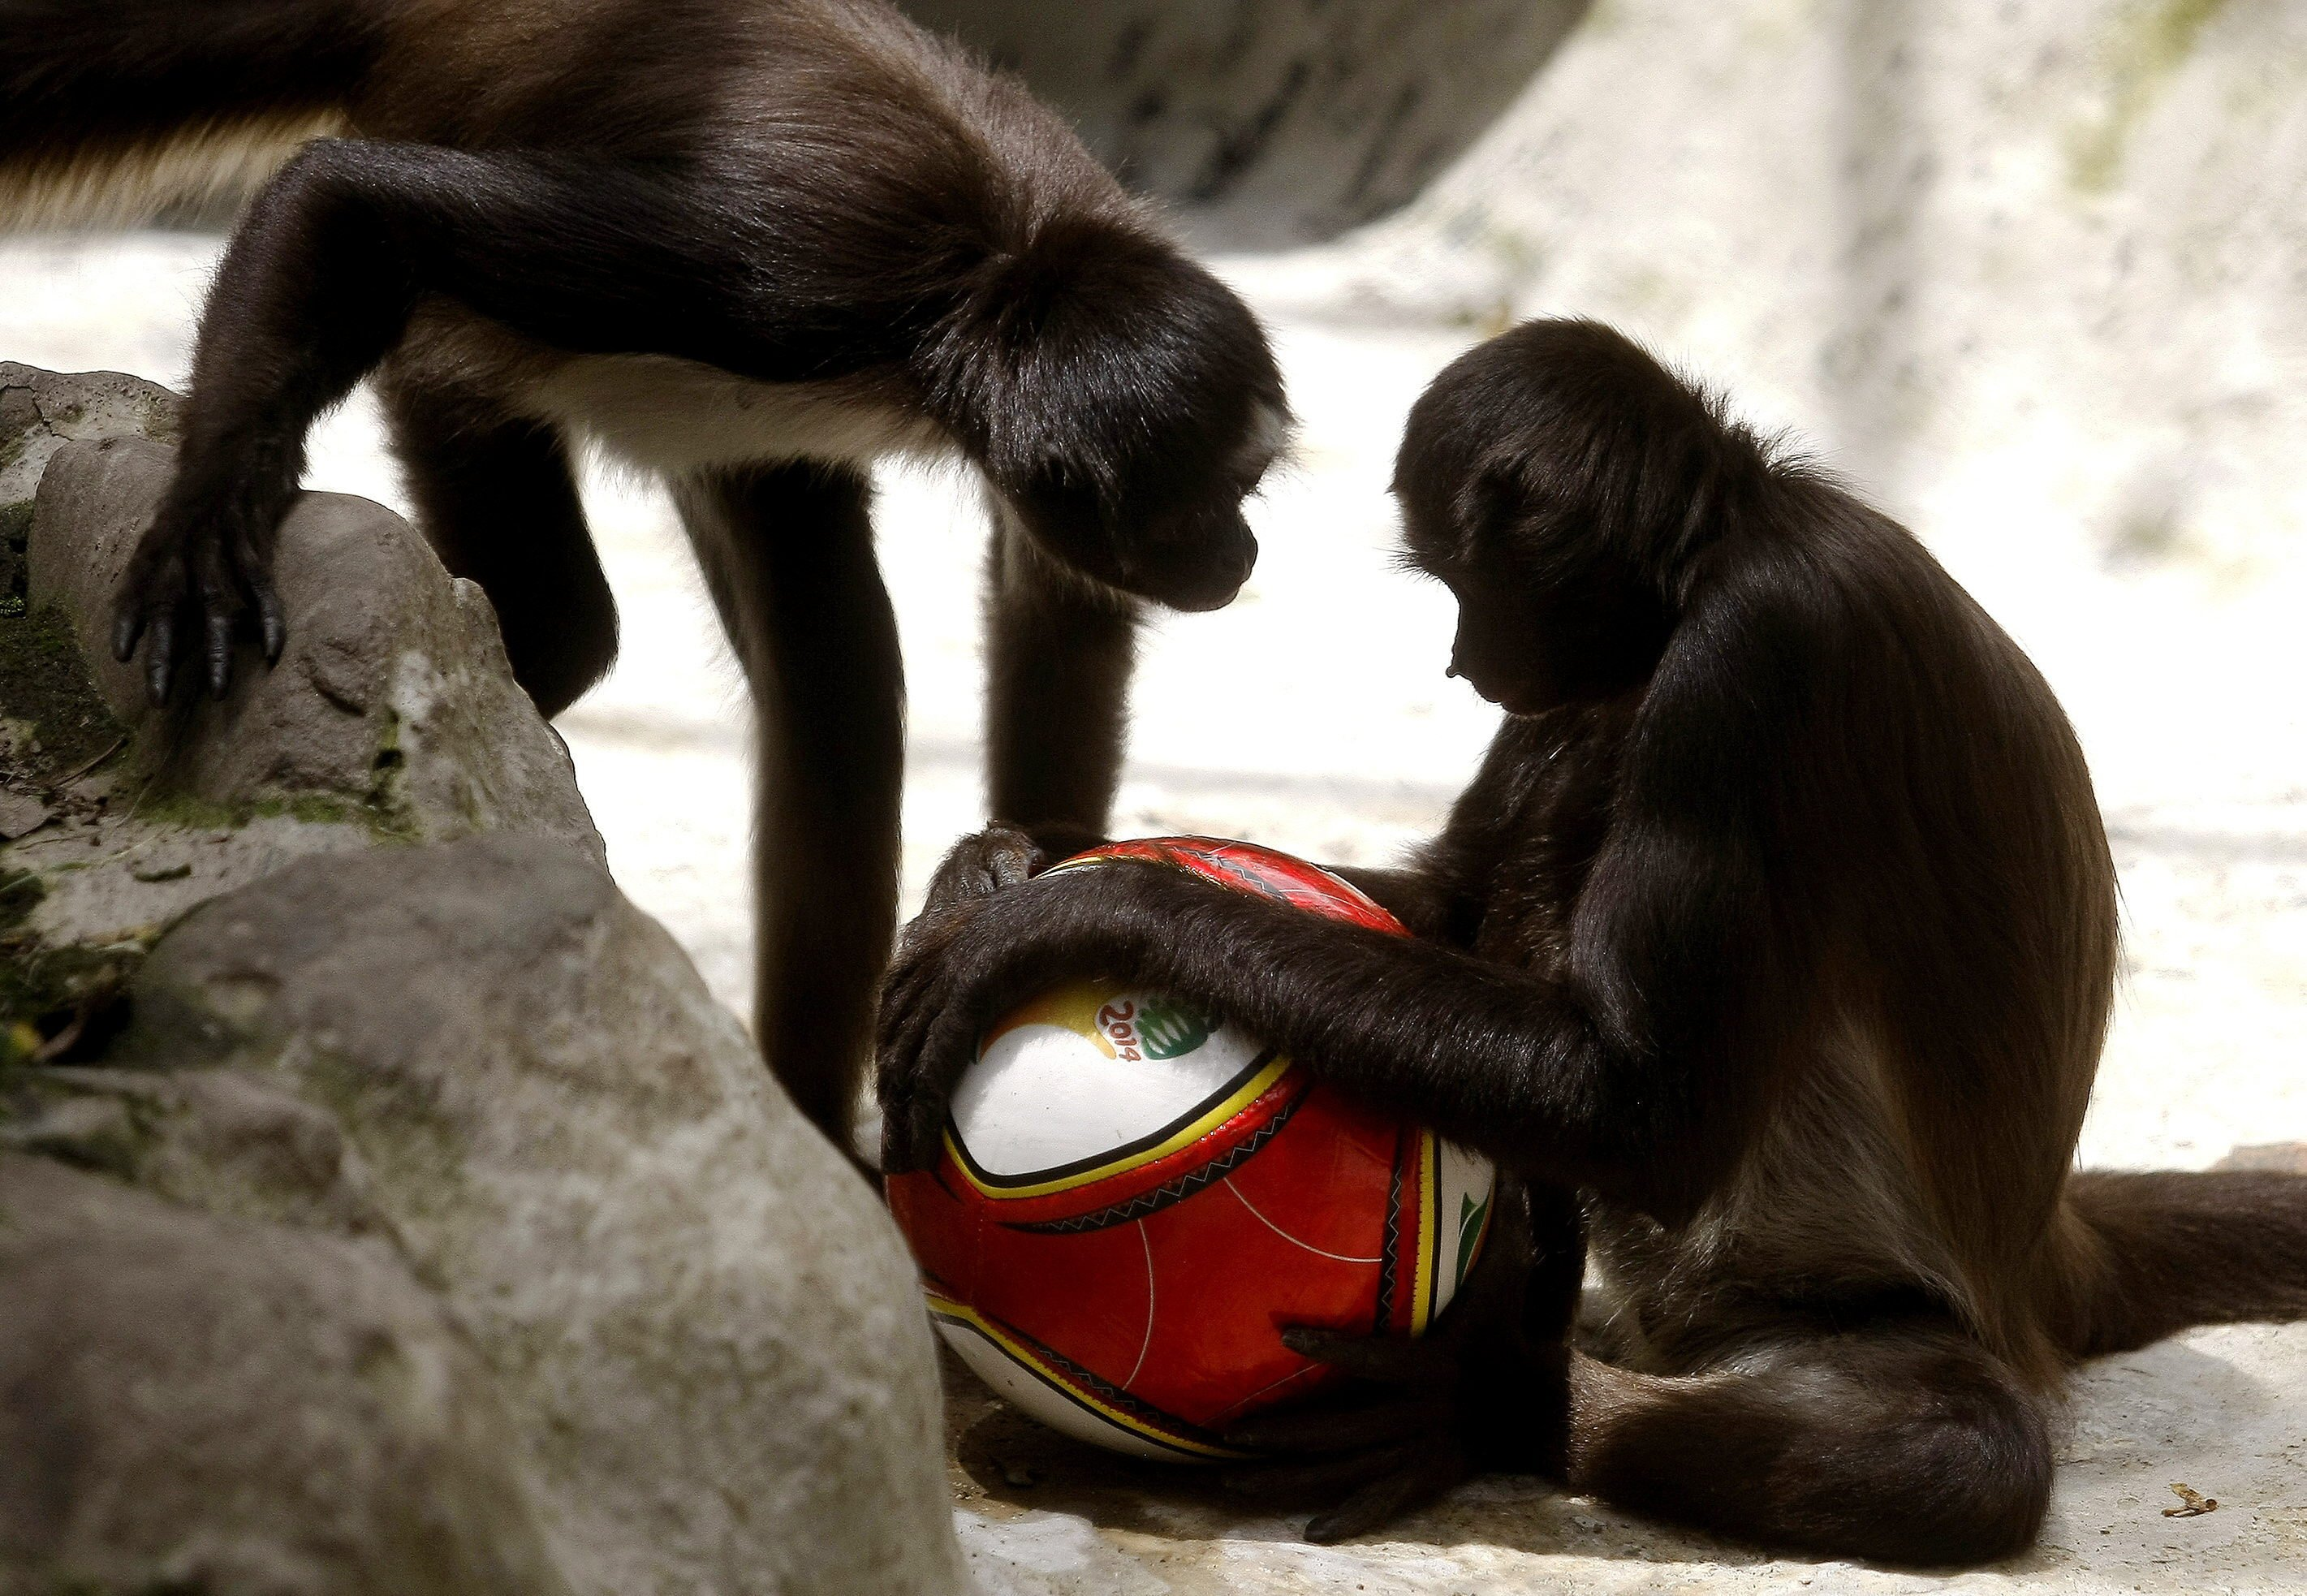 Two monkey play with a soccer ball at the Zoo of Santa Fe in Medellin, Colombia, on June 12, 2014.